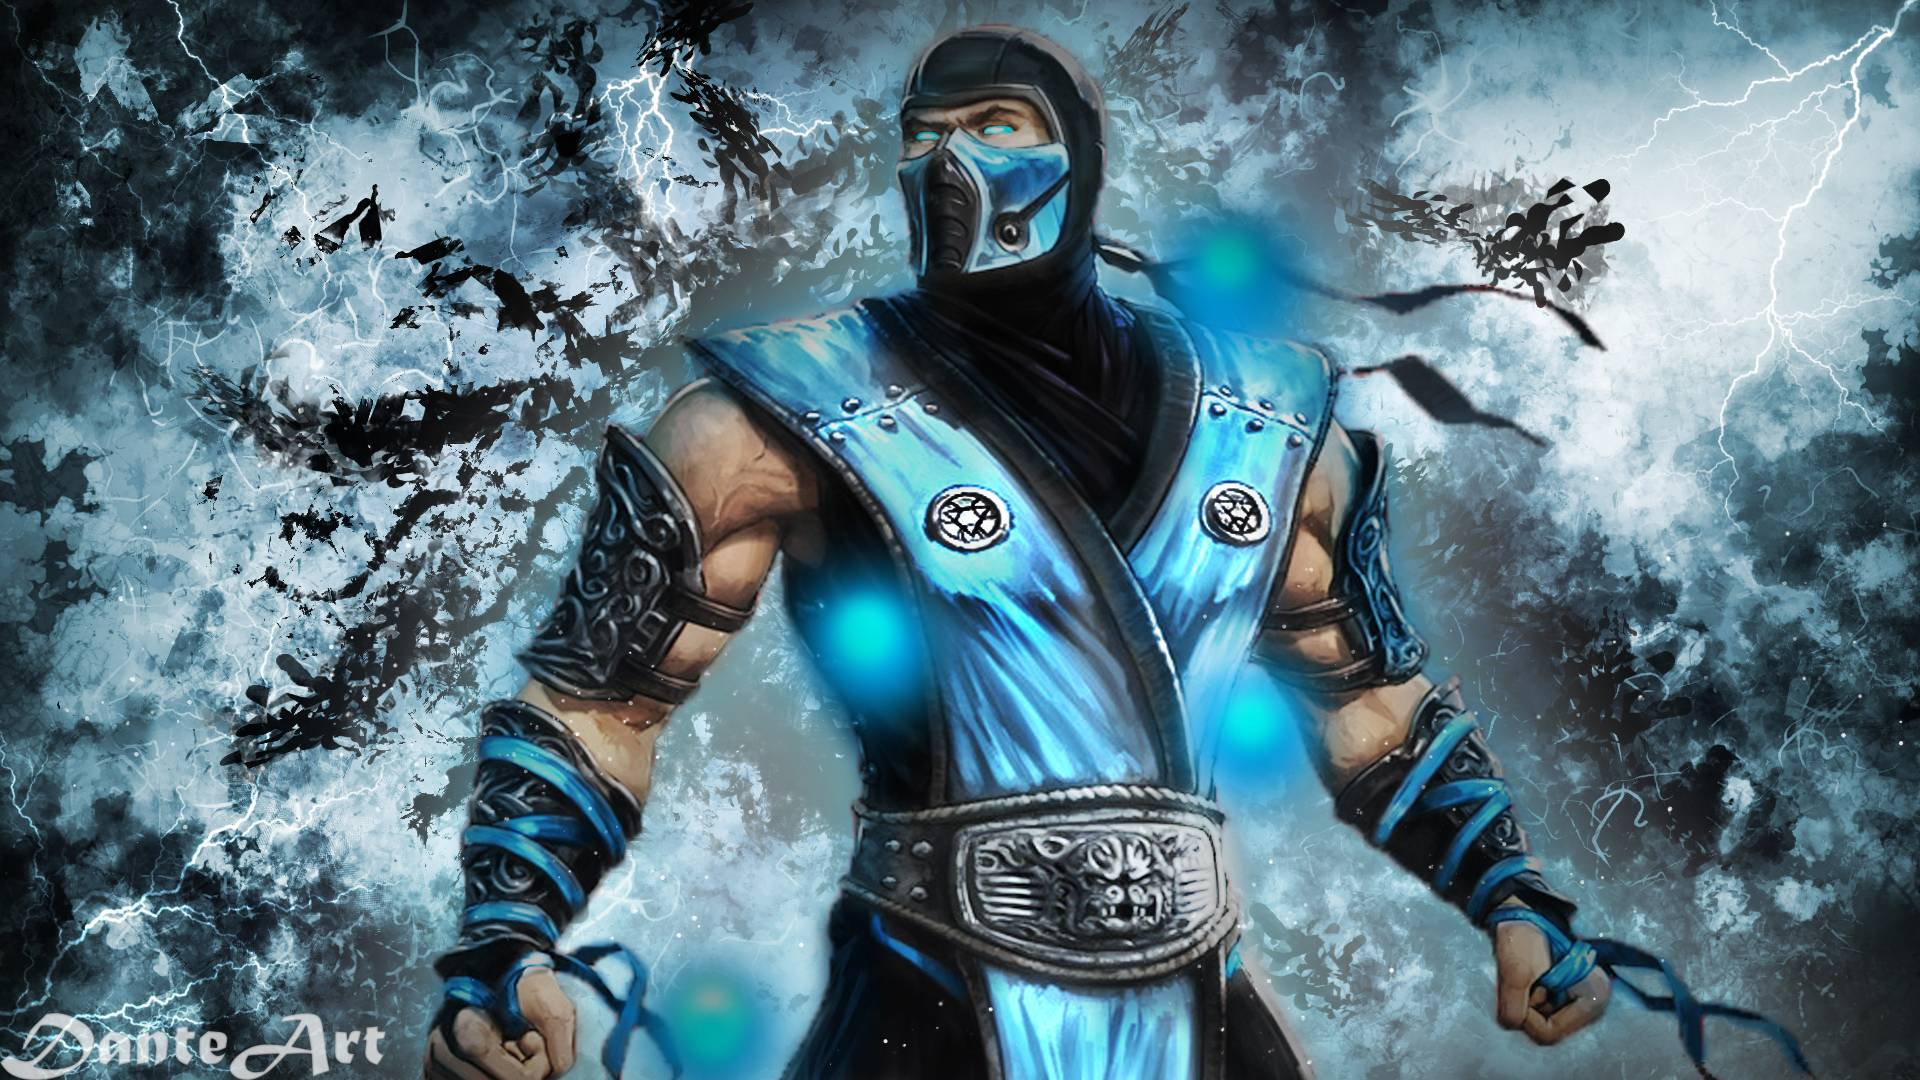 Mortal Kombat X Scorpio 3d Cool Video Games Wallpapers: Mortal Kombat HD Wallpapers